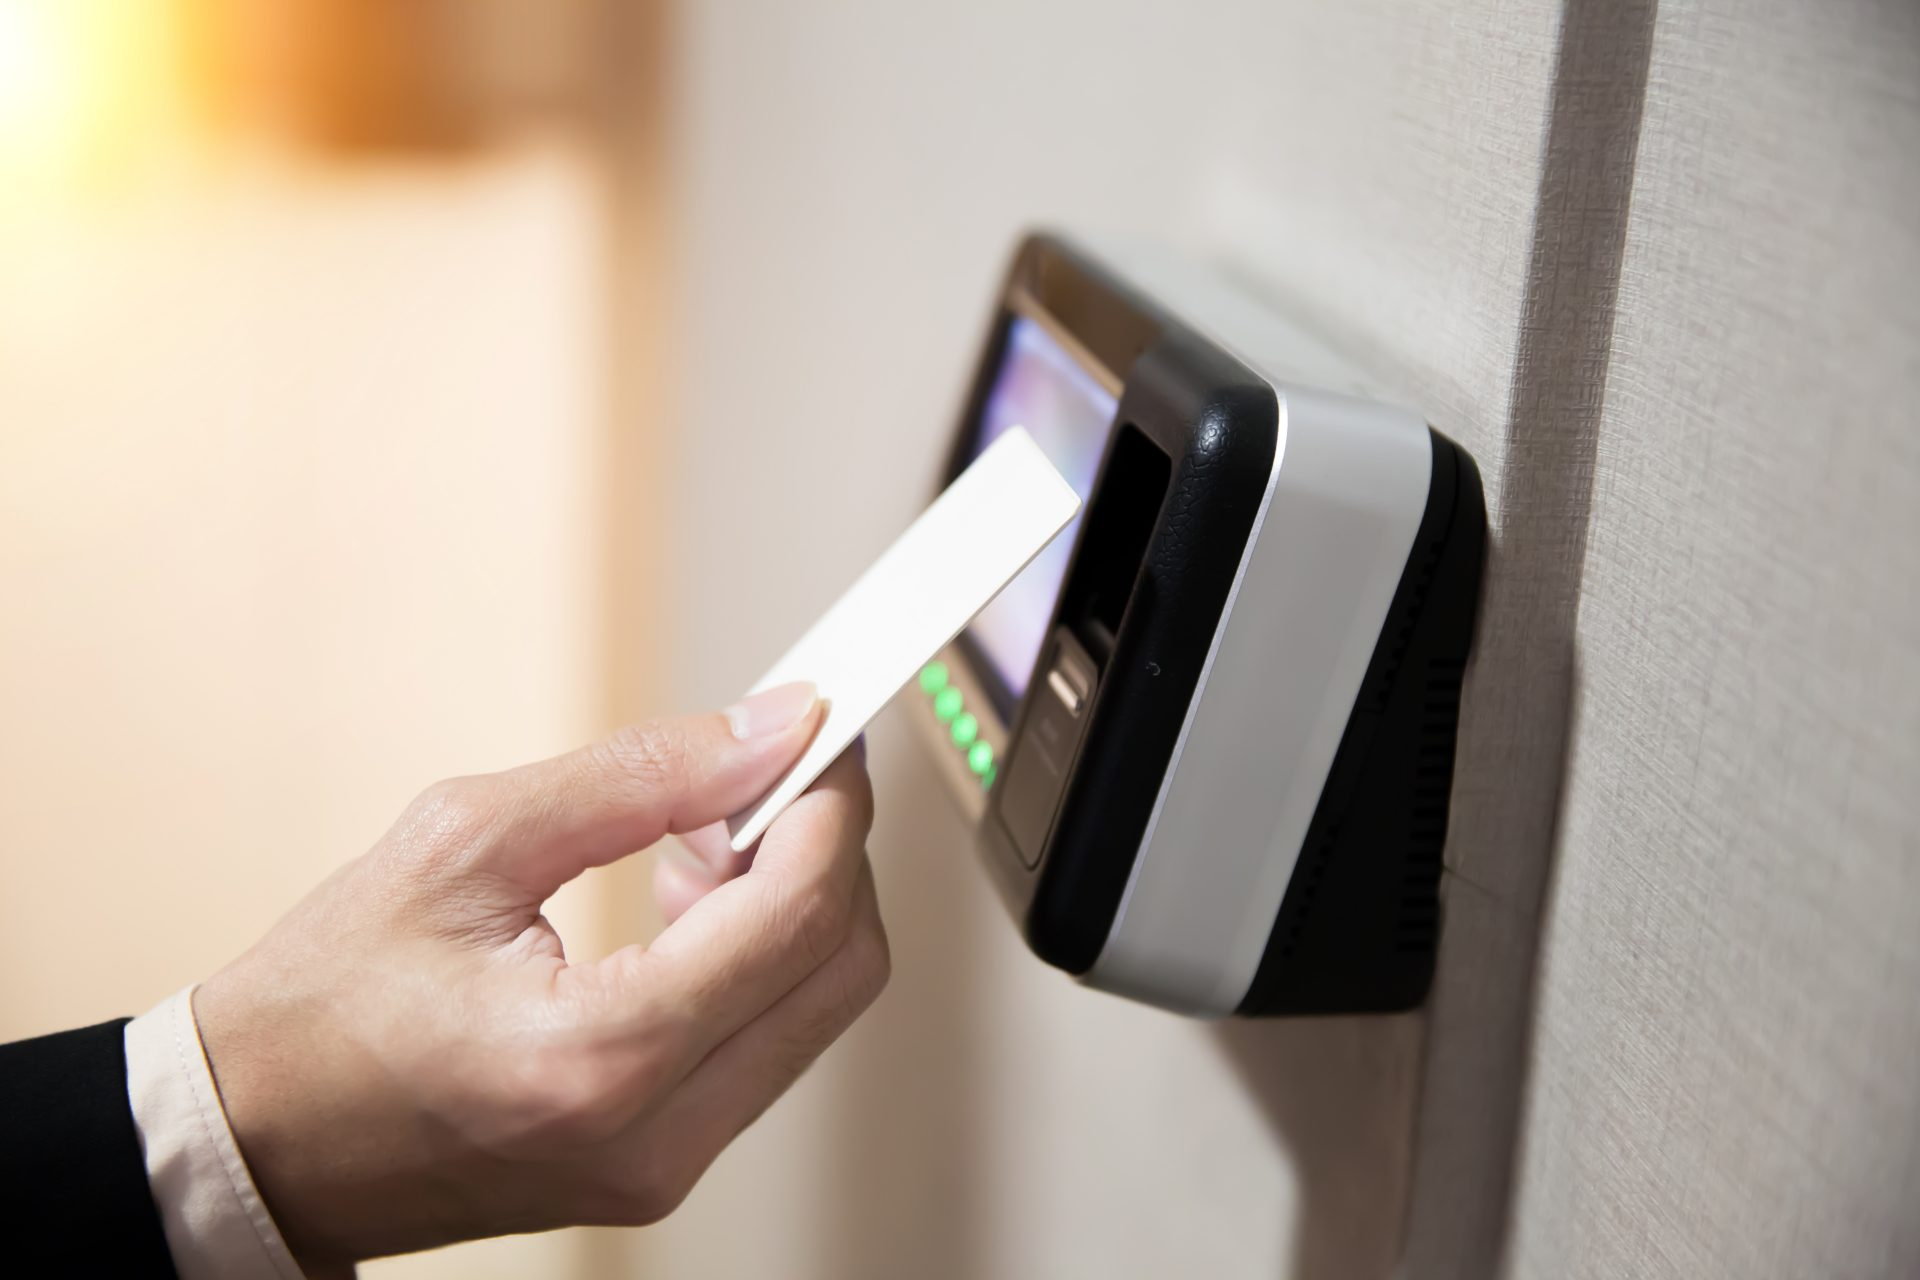 close-up-of-hand-using-keycard-to-open-the-door